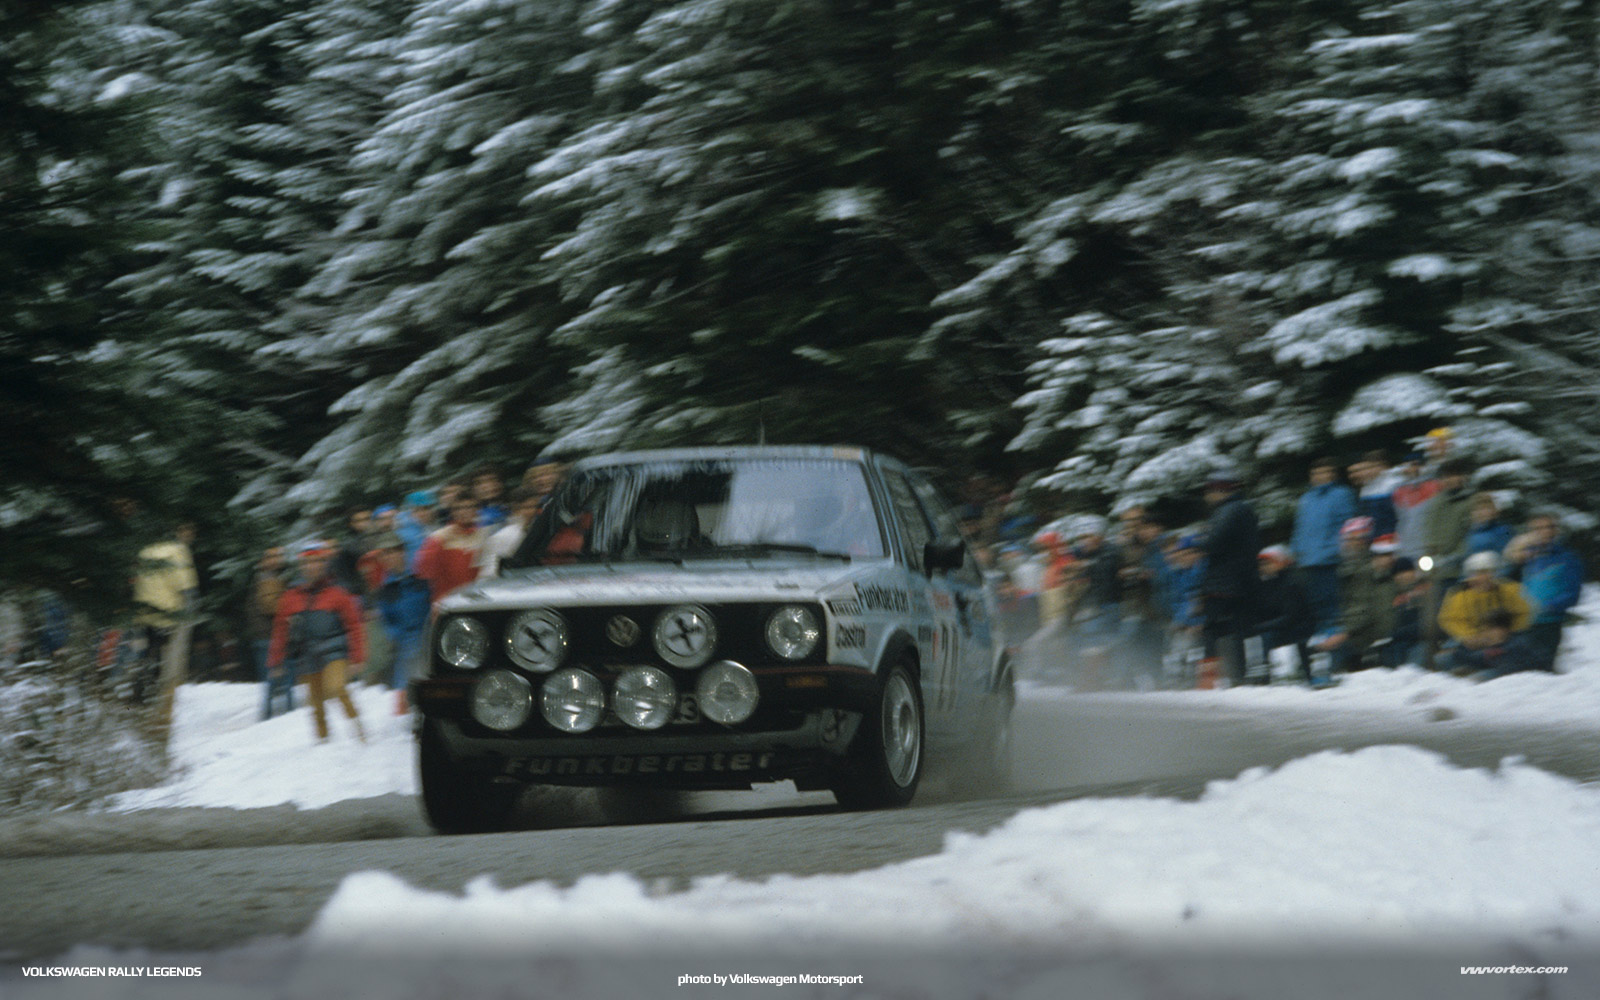 volkswagen-rally-legends-377